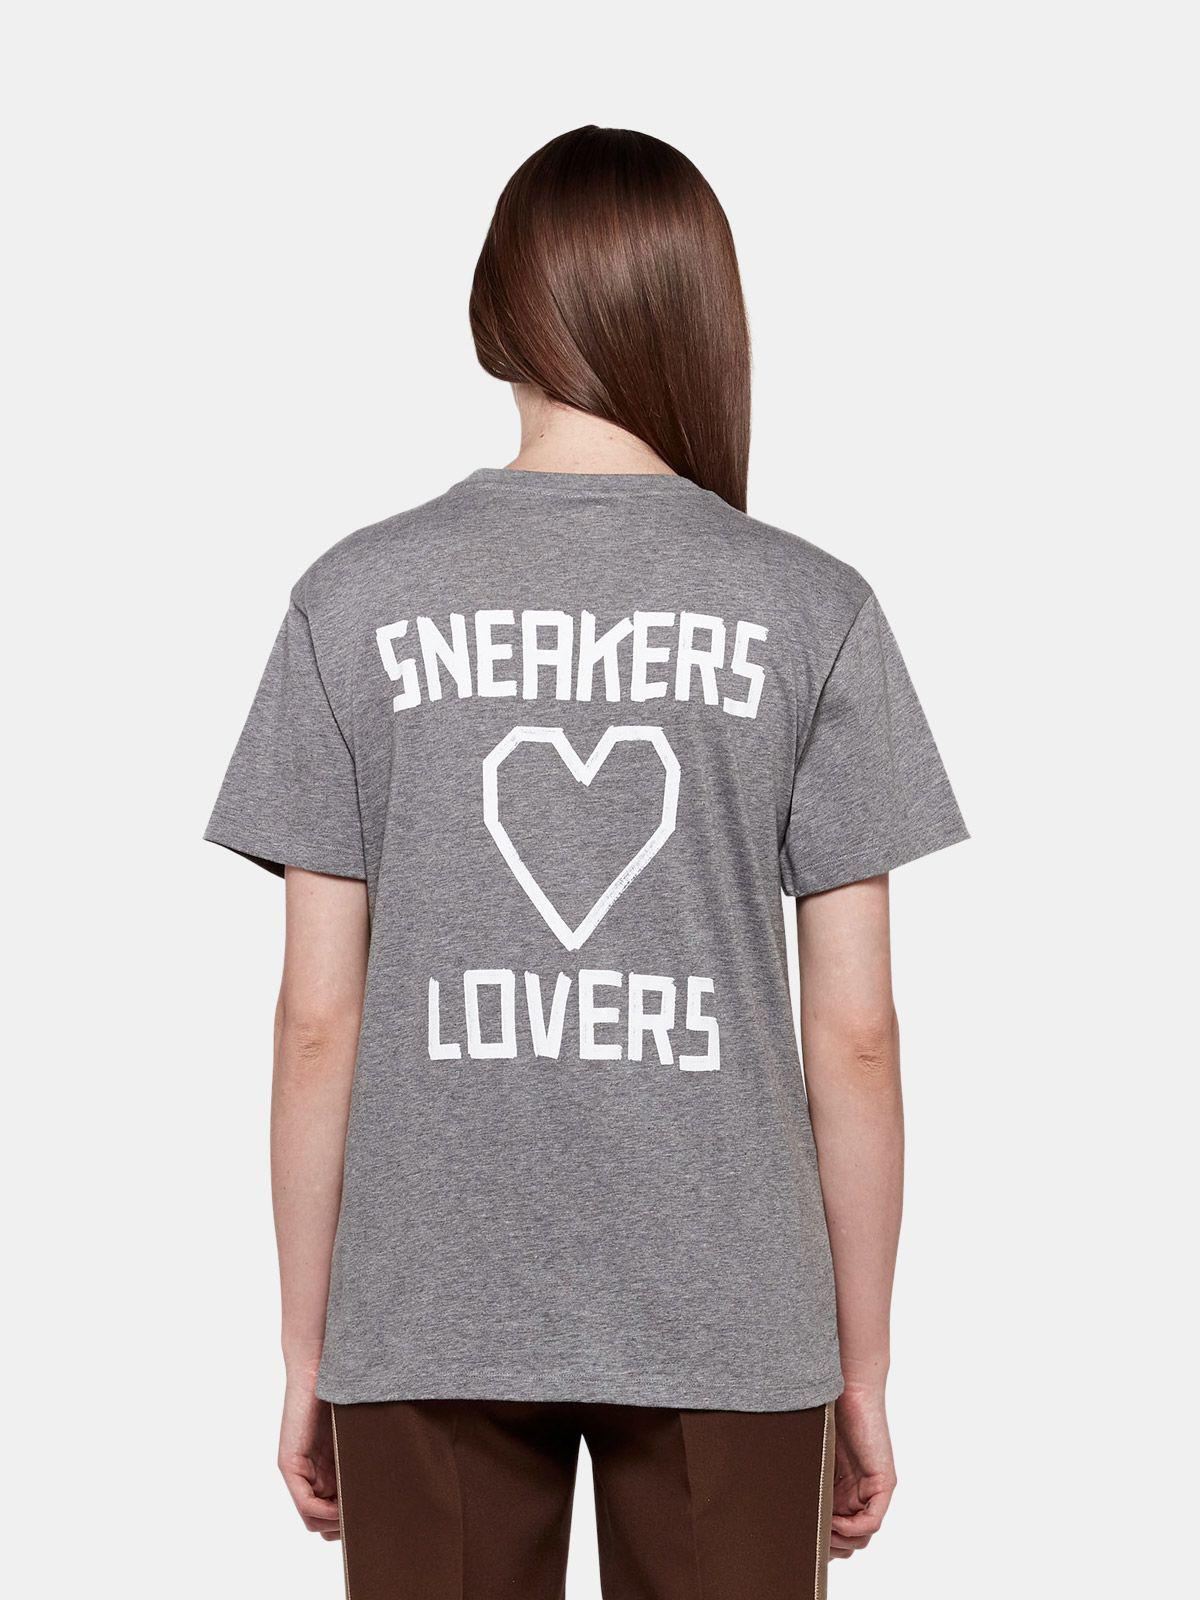 Grey Golden T-shirt with Sneakers Lovers print 1